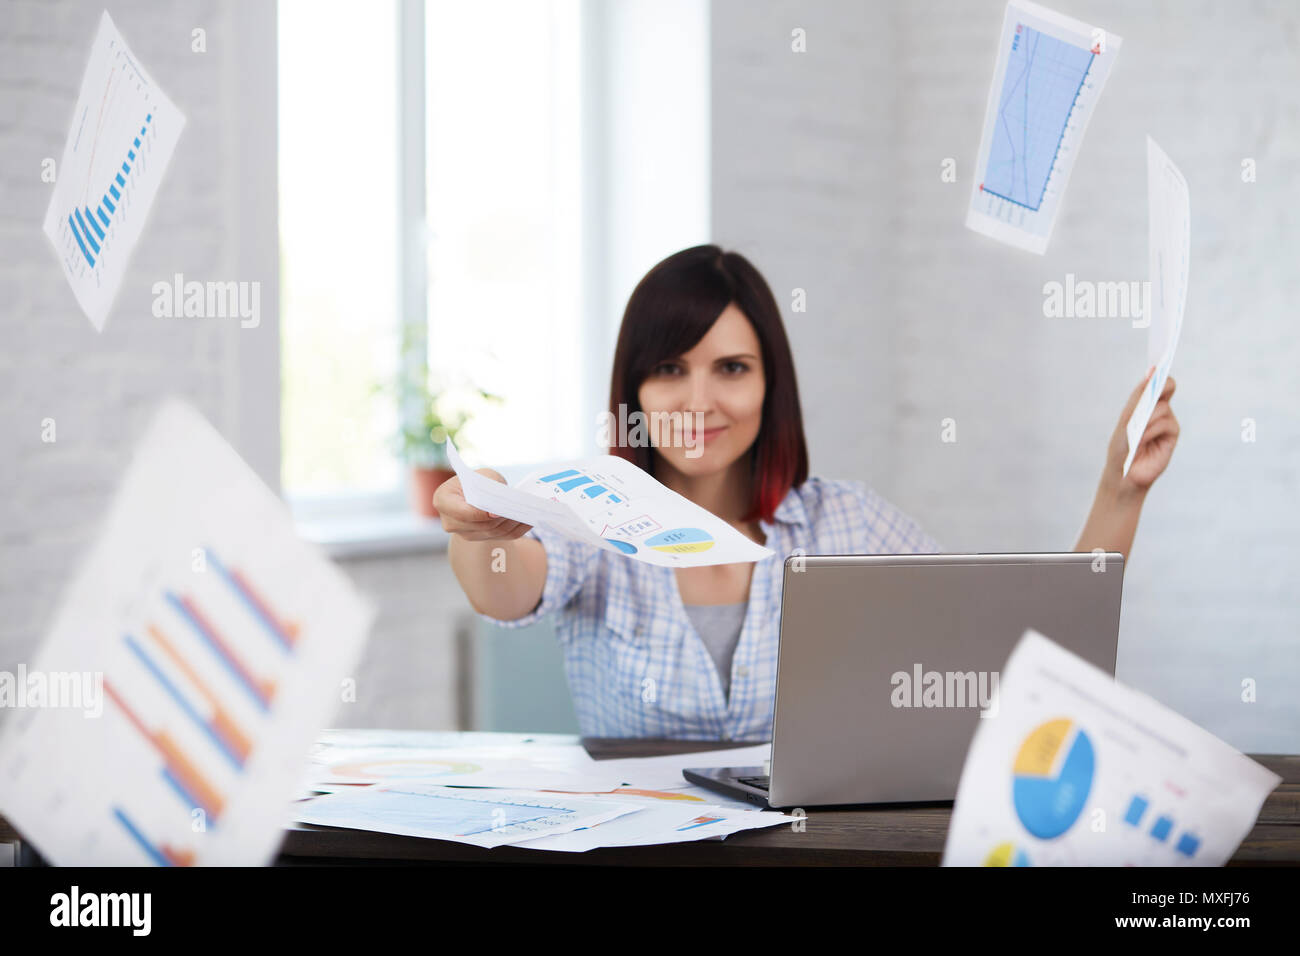 Happy and smiling female worker throws documents in office with falling papers around.Finishing work in time.Time management, deadline concept. - Stock Image